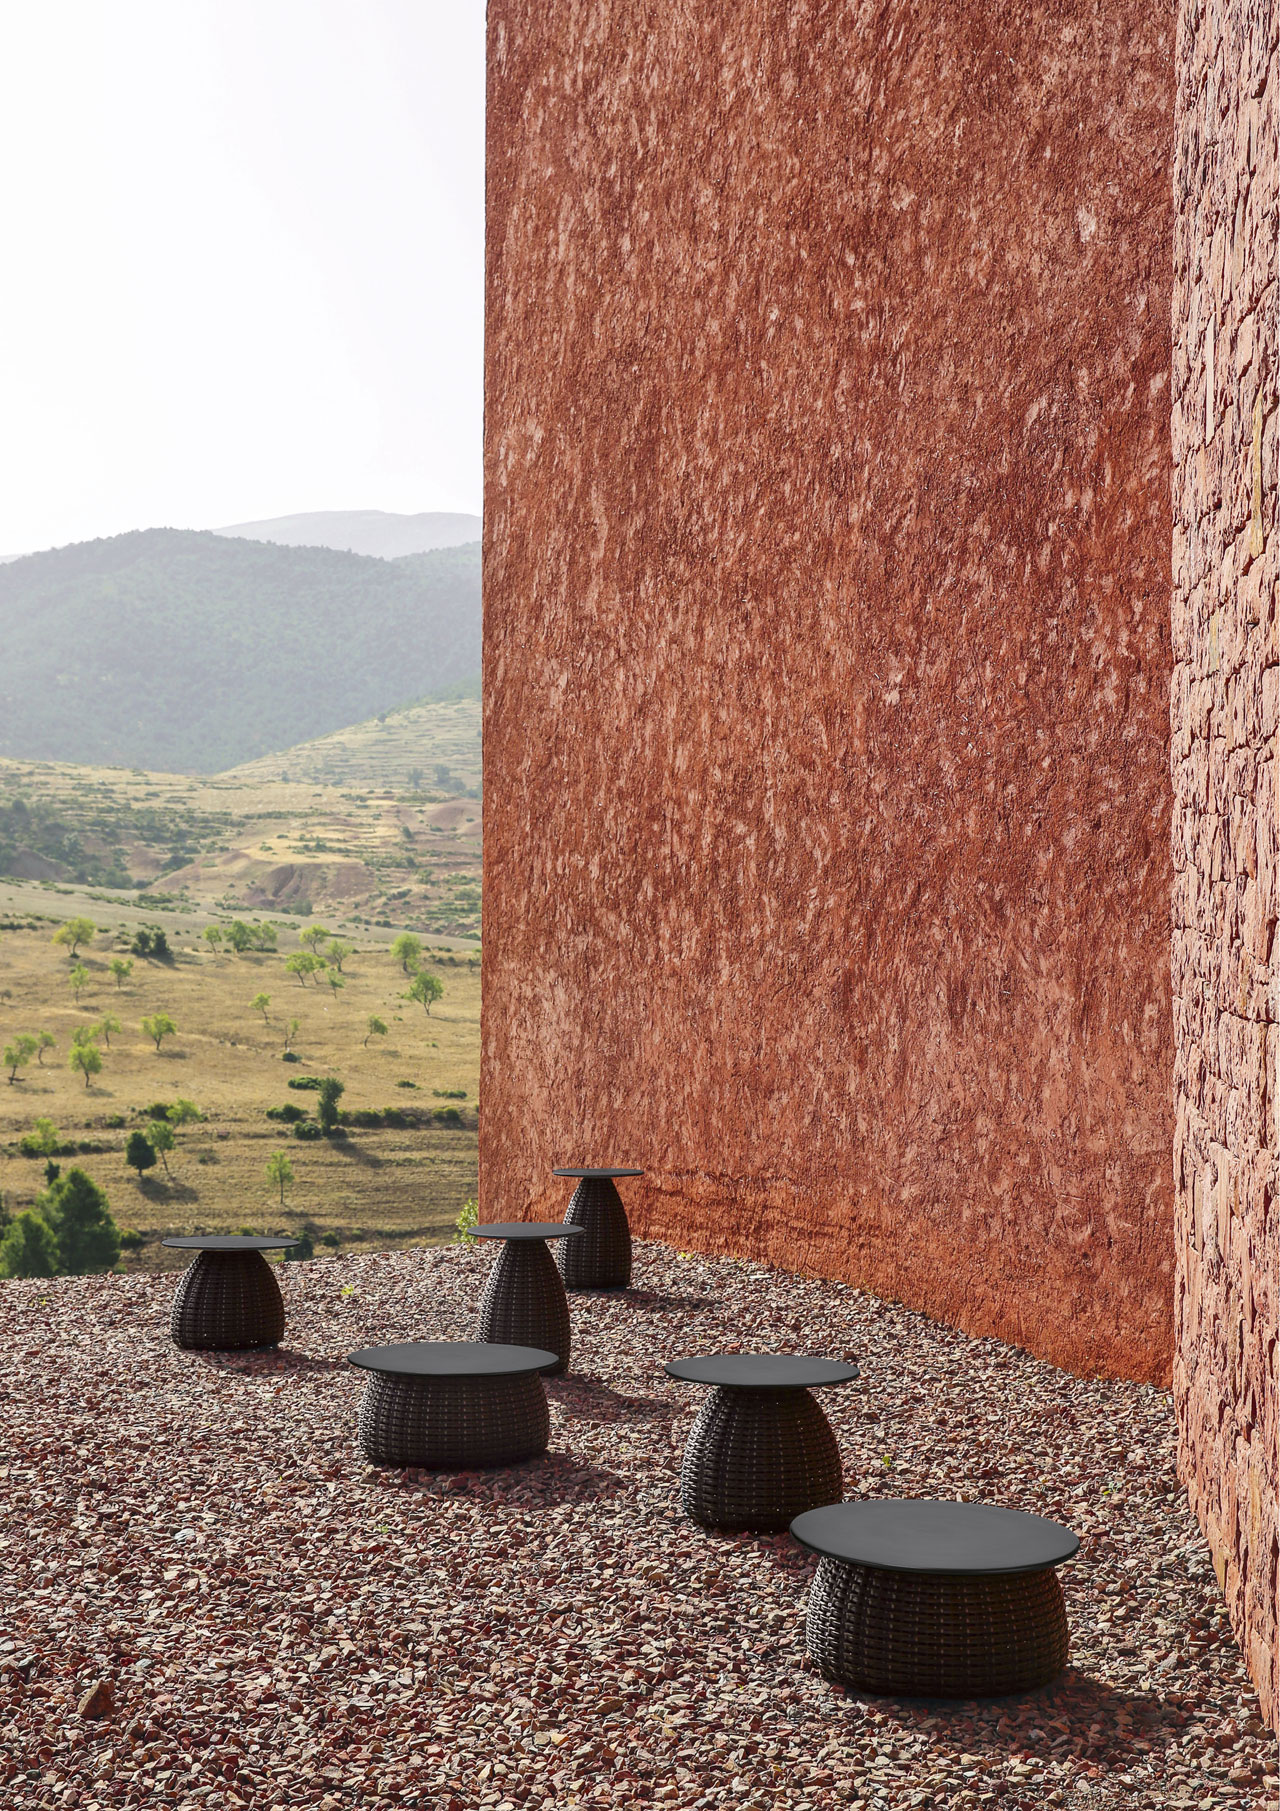 PORCINI side tables by Lorenza Bozzoli for DEDON.